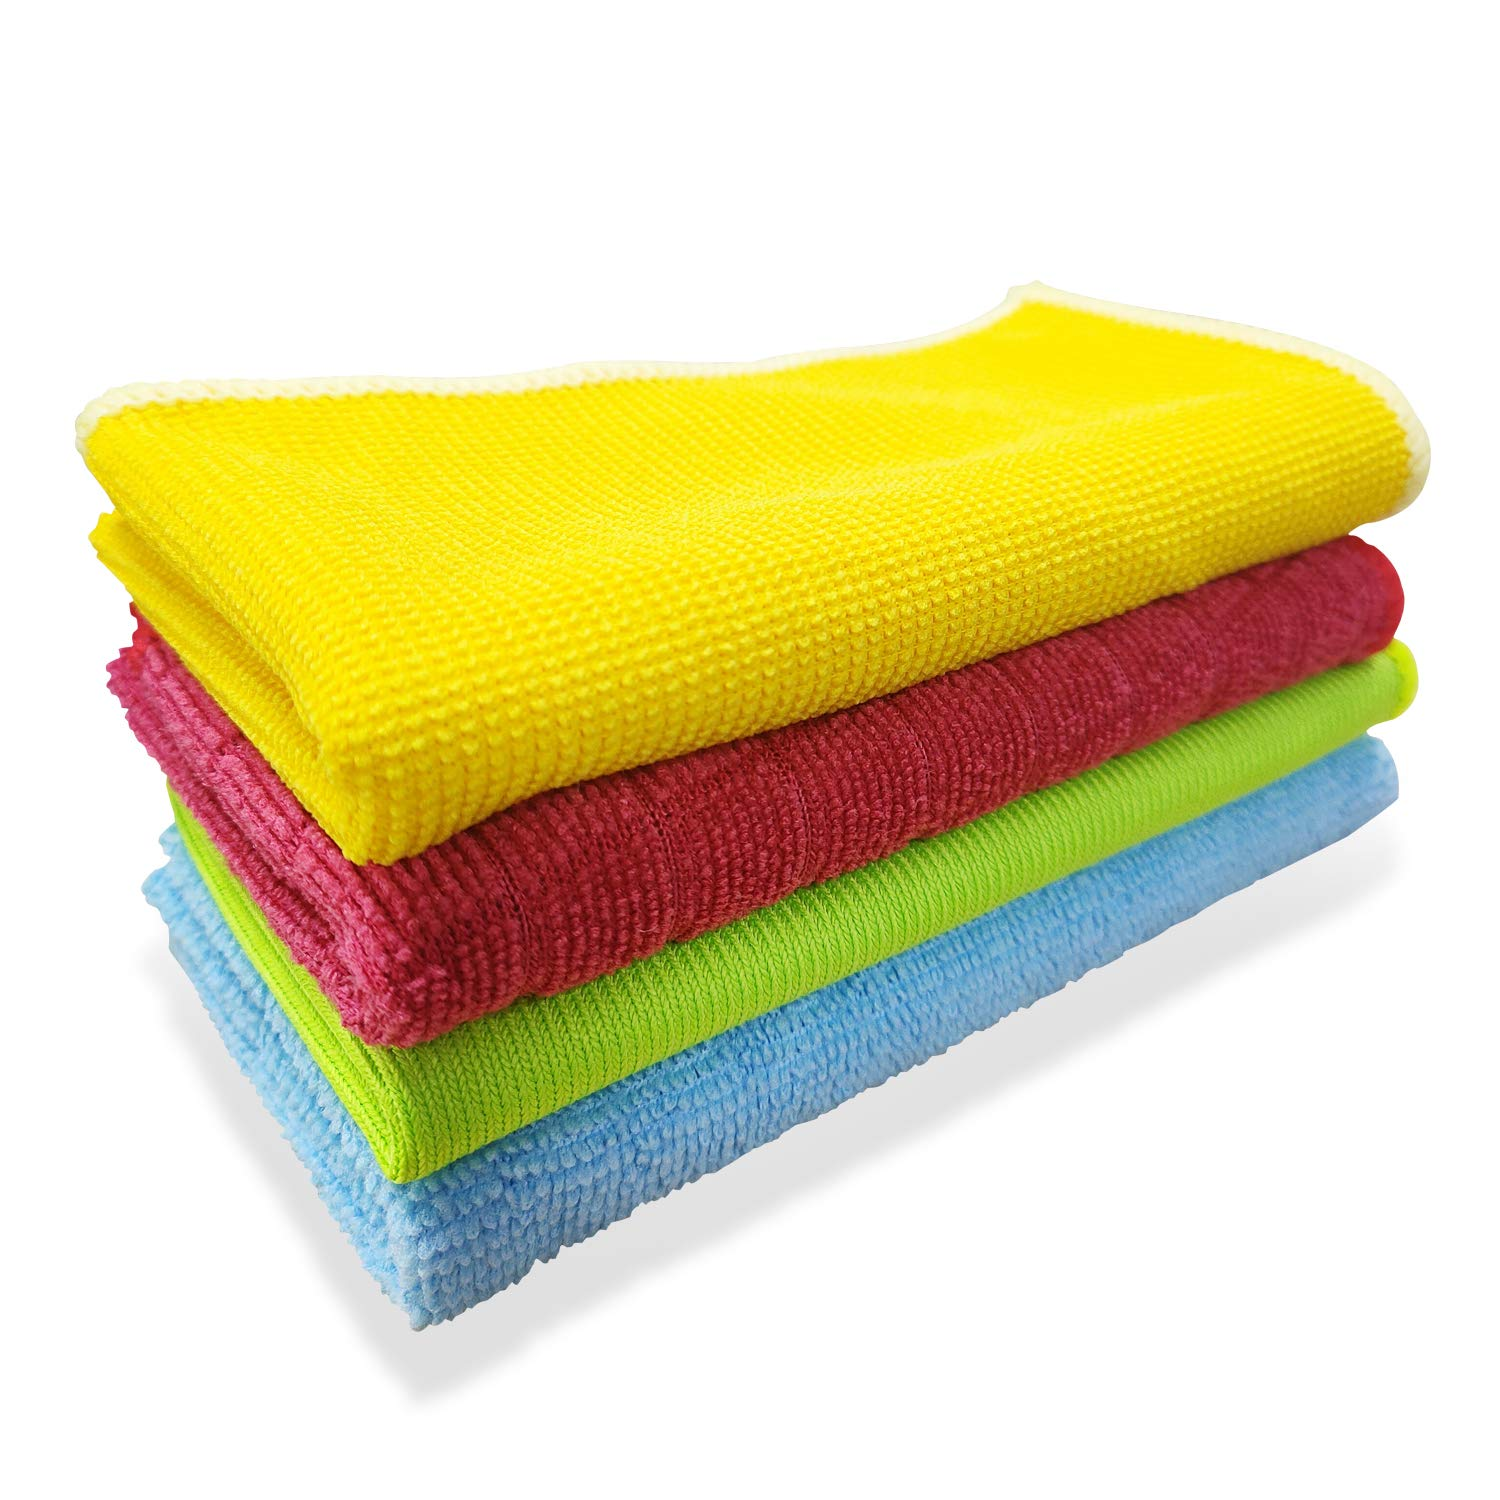 Lorpect Microfiber Cleaning Cloths Softer, Multi-Functional Washable Reusable Cleaning Towels, Chemical Free for House, Kitchen, Window & Car,(12 x 12 Inch)-12 PCS